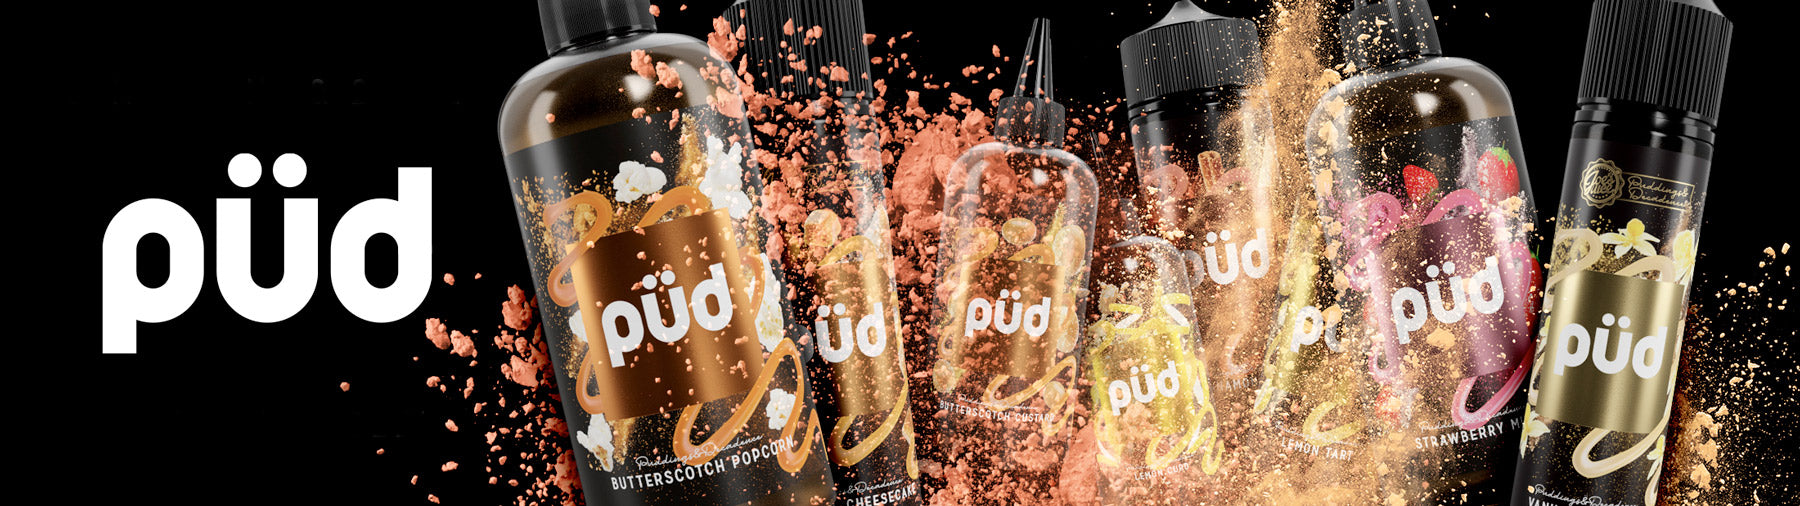 pud-vape by joes juice - buy online